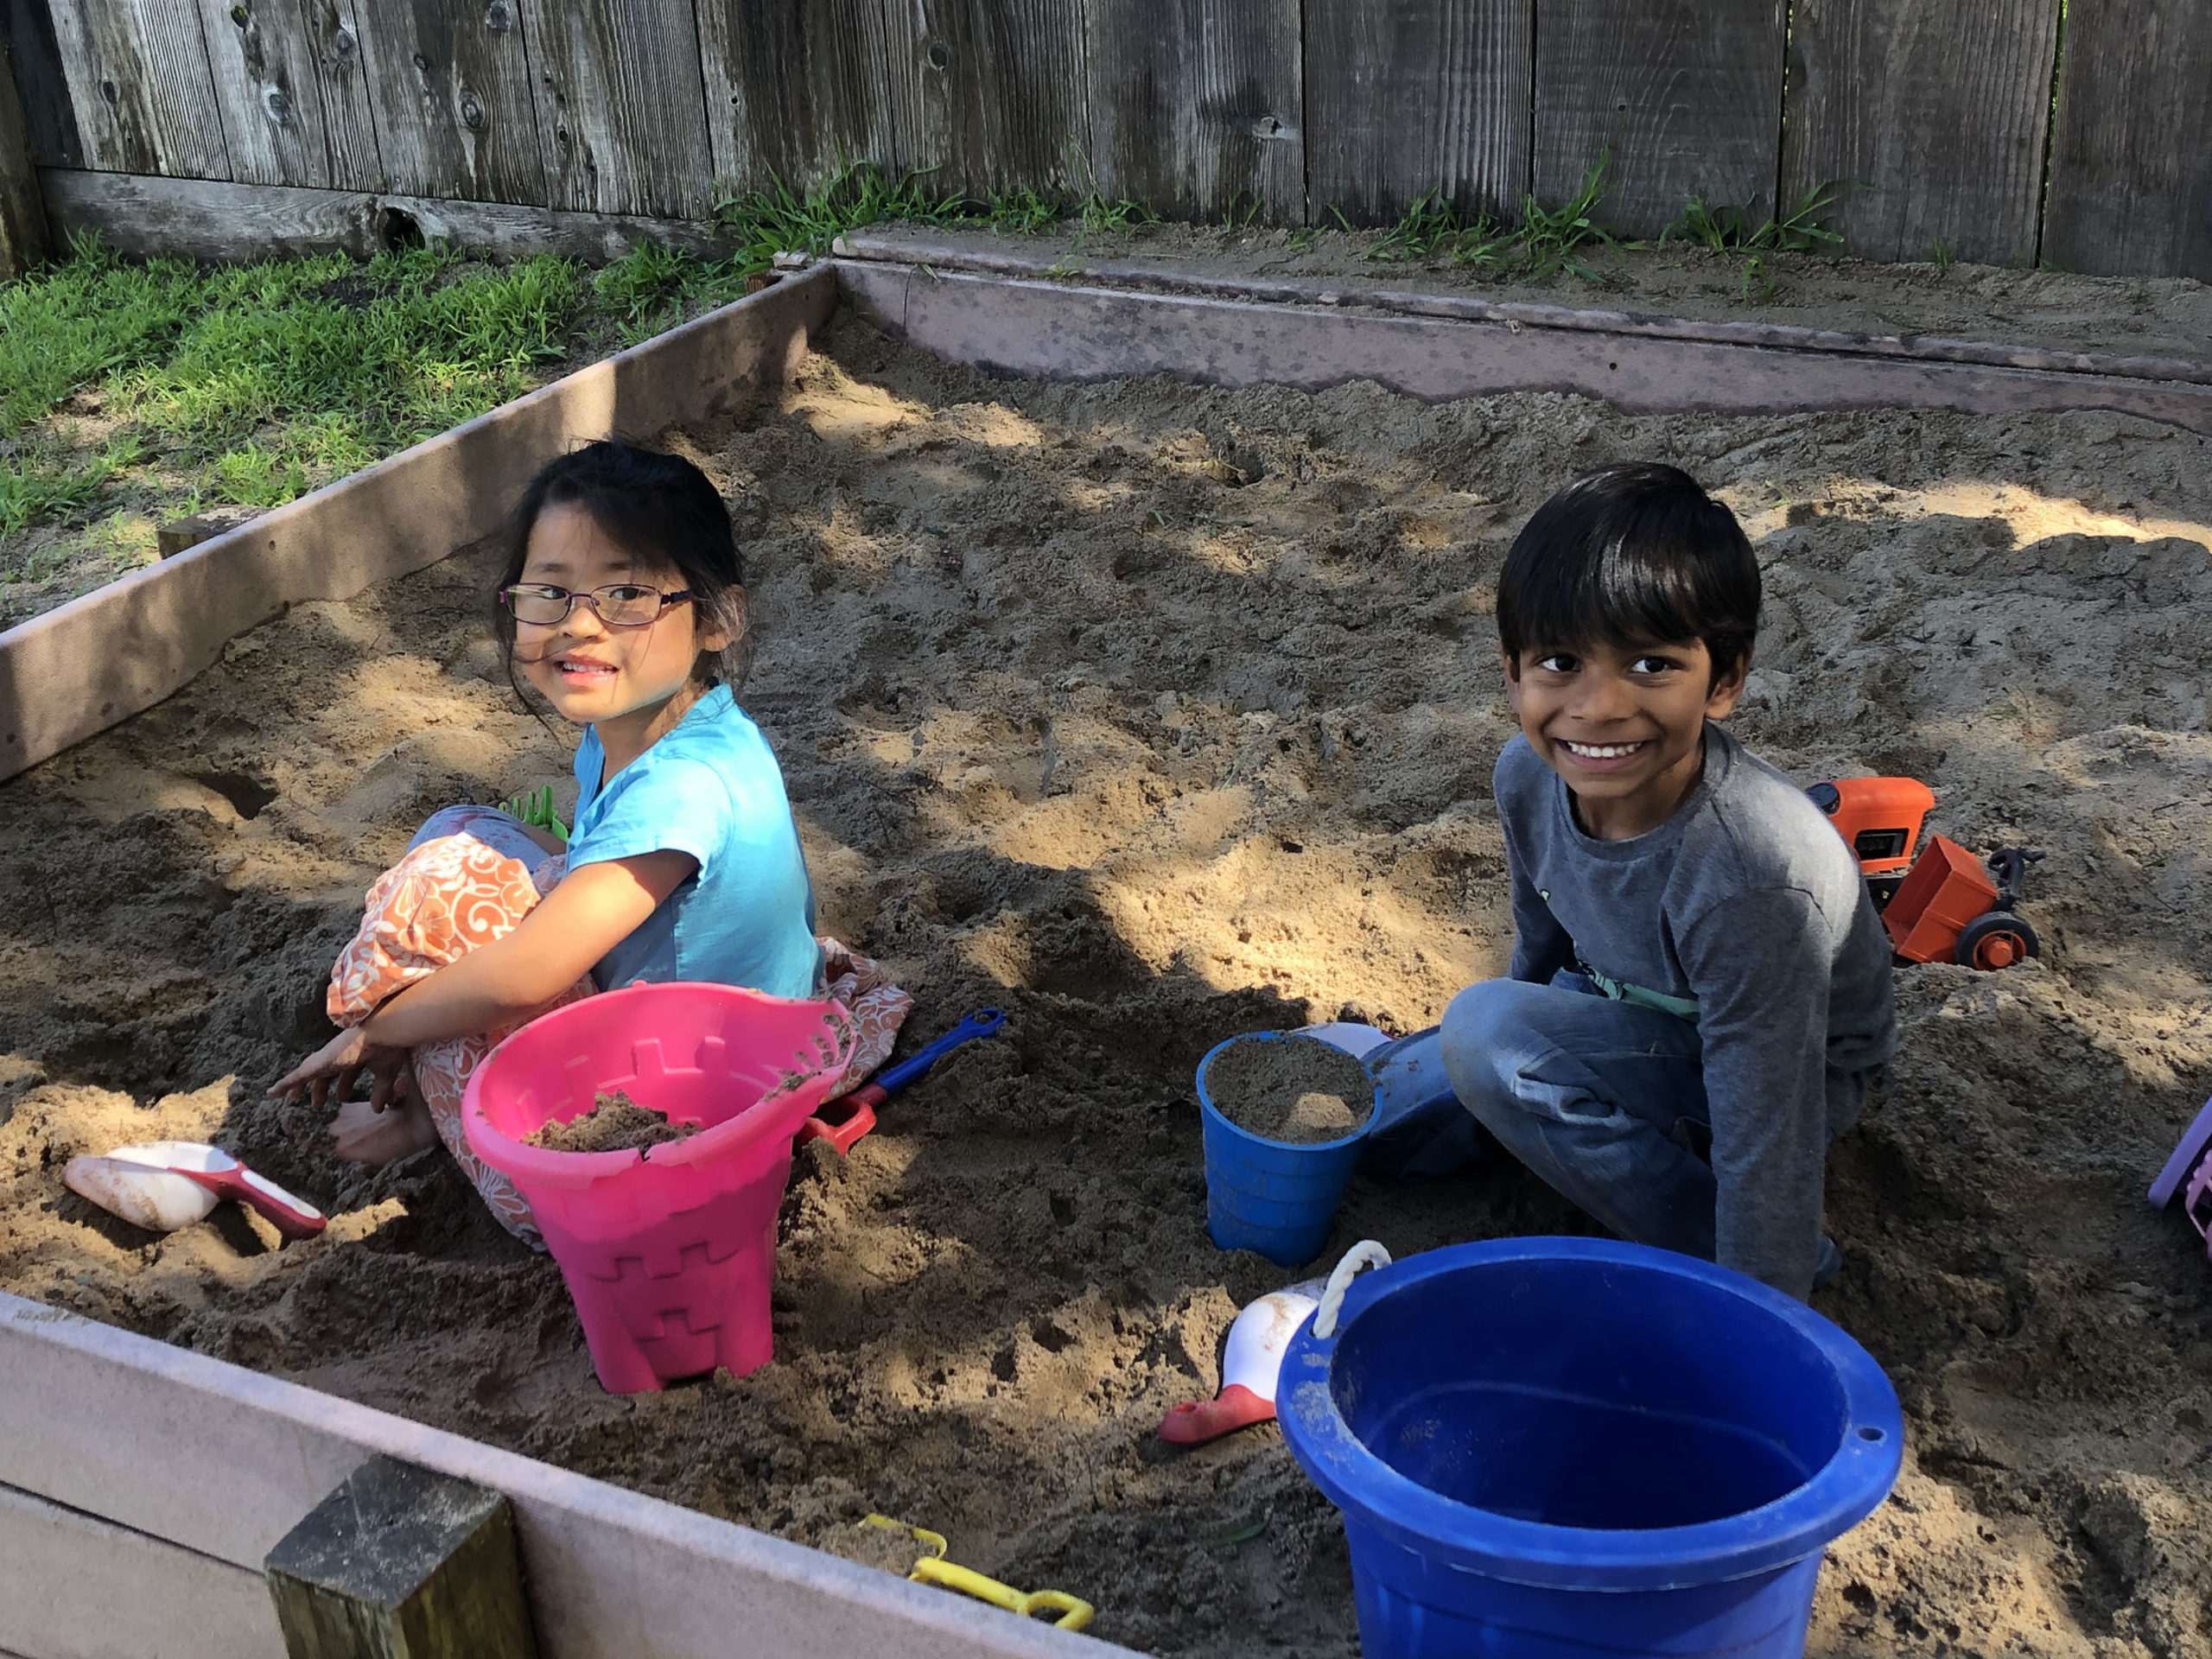 Friends - two friends playing in the sand box